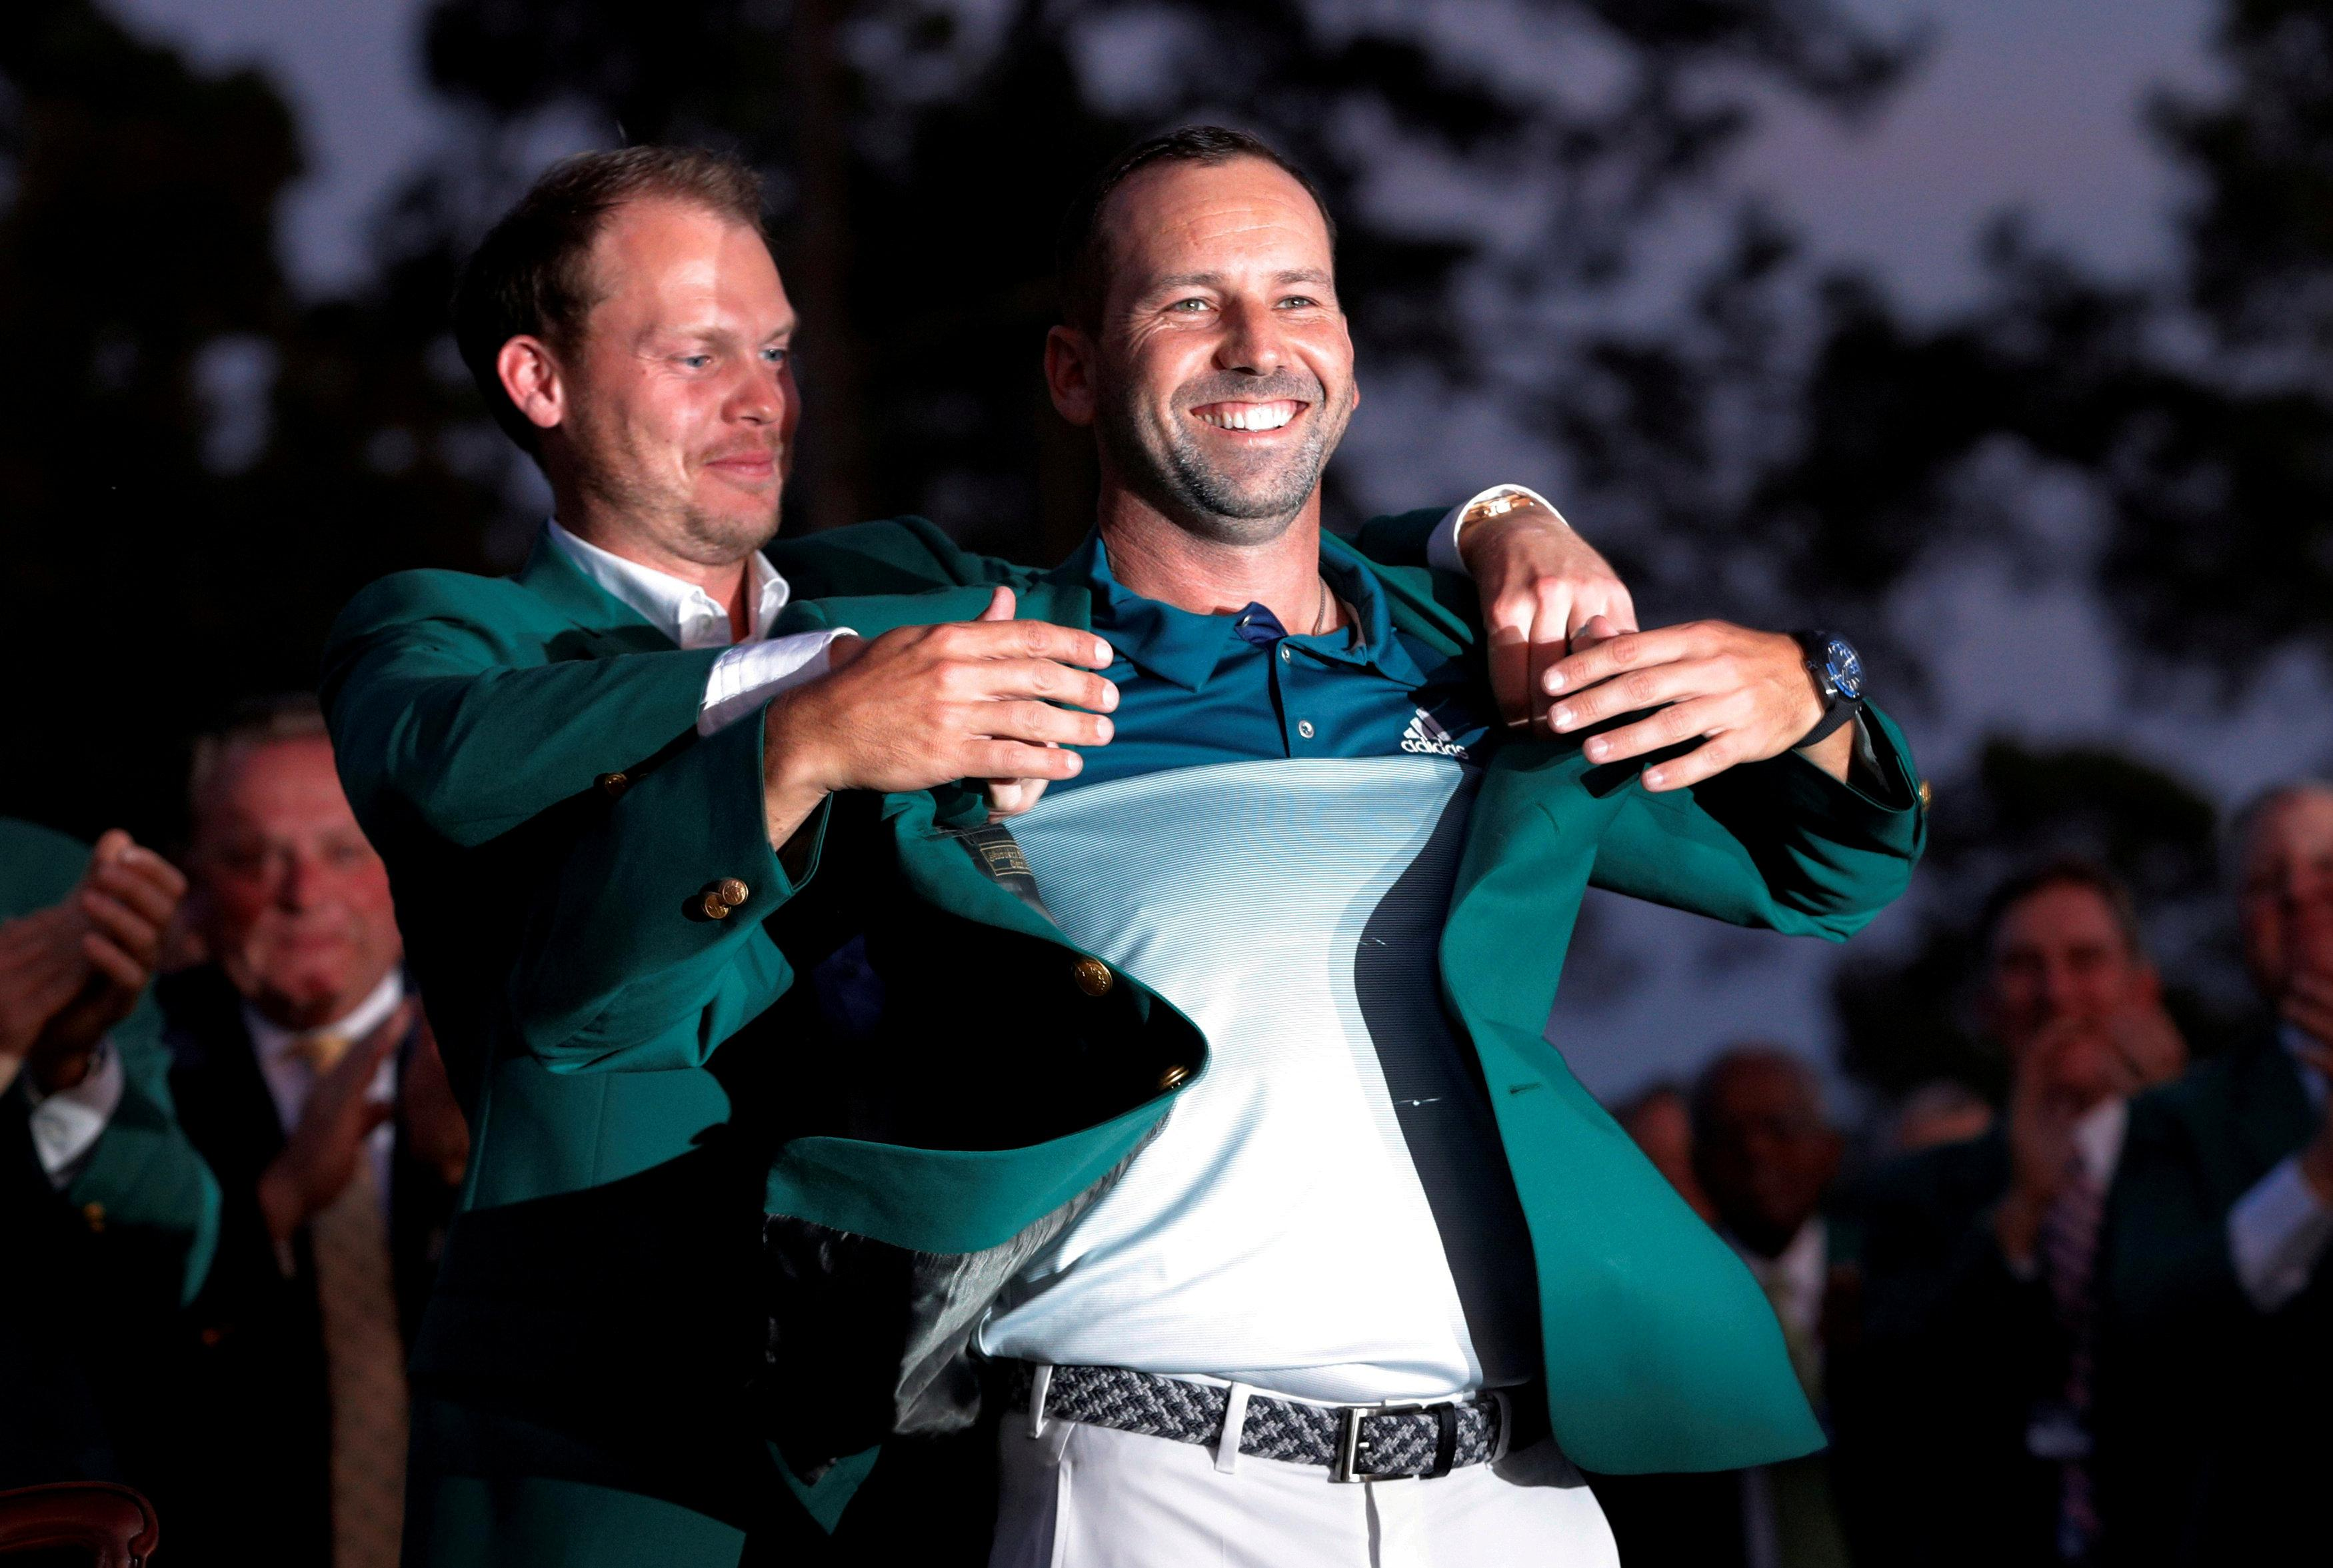 Garcia was crowned Masters champion after an impressive showing